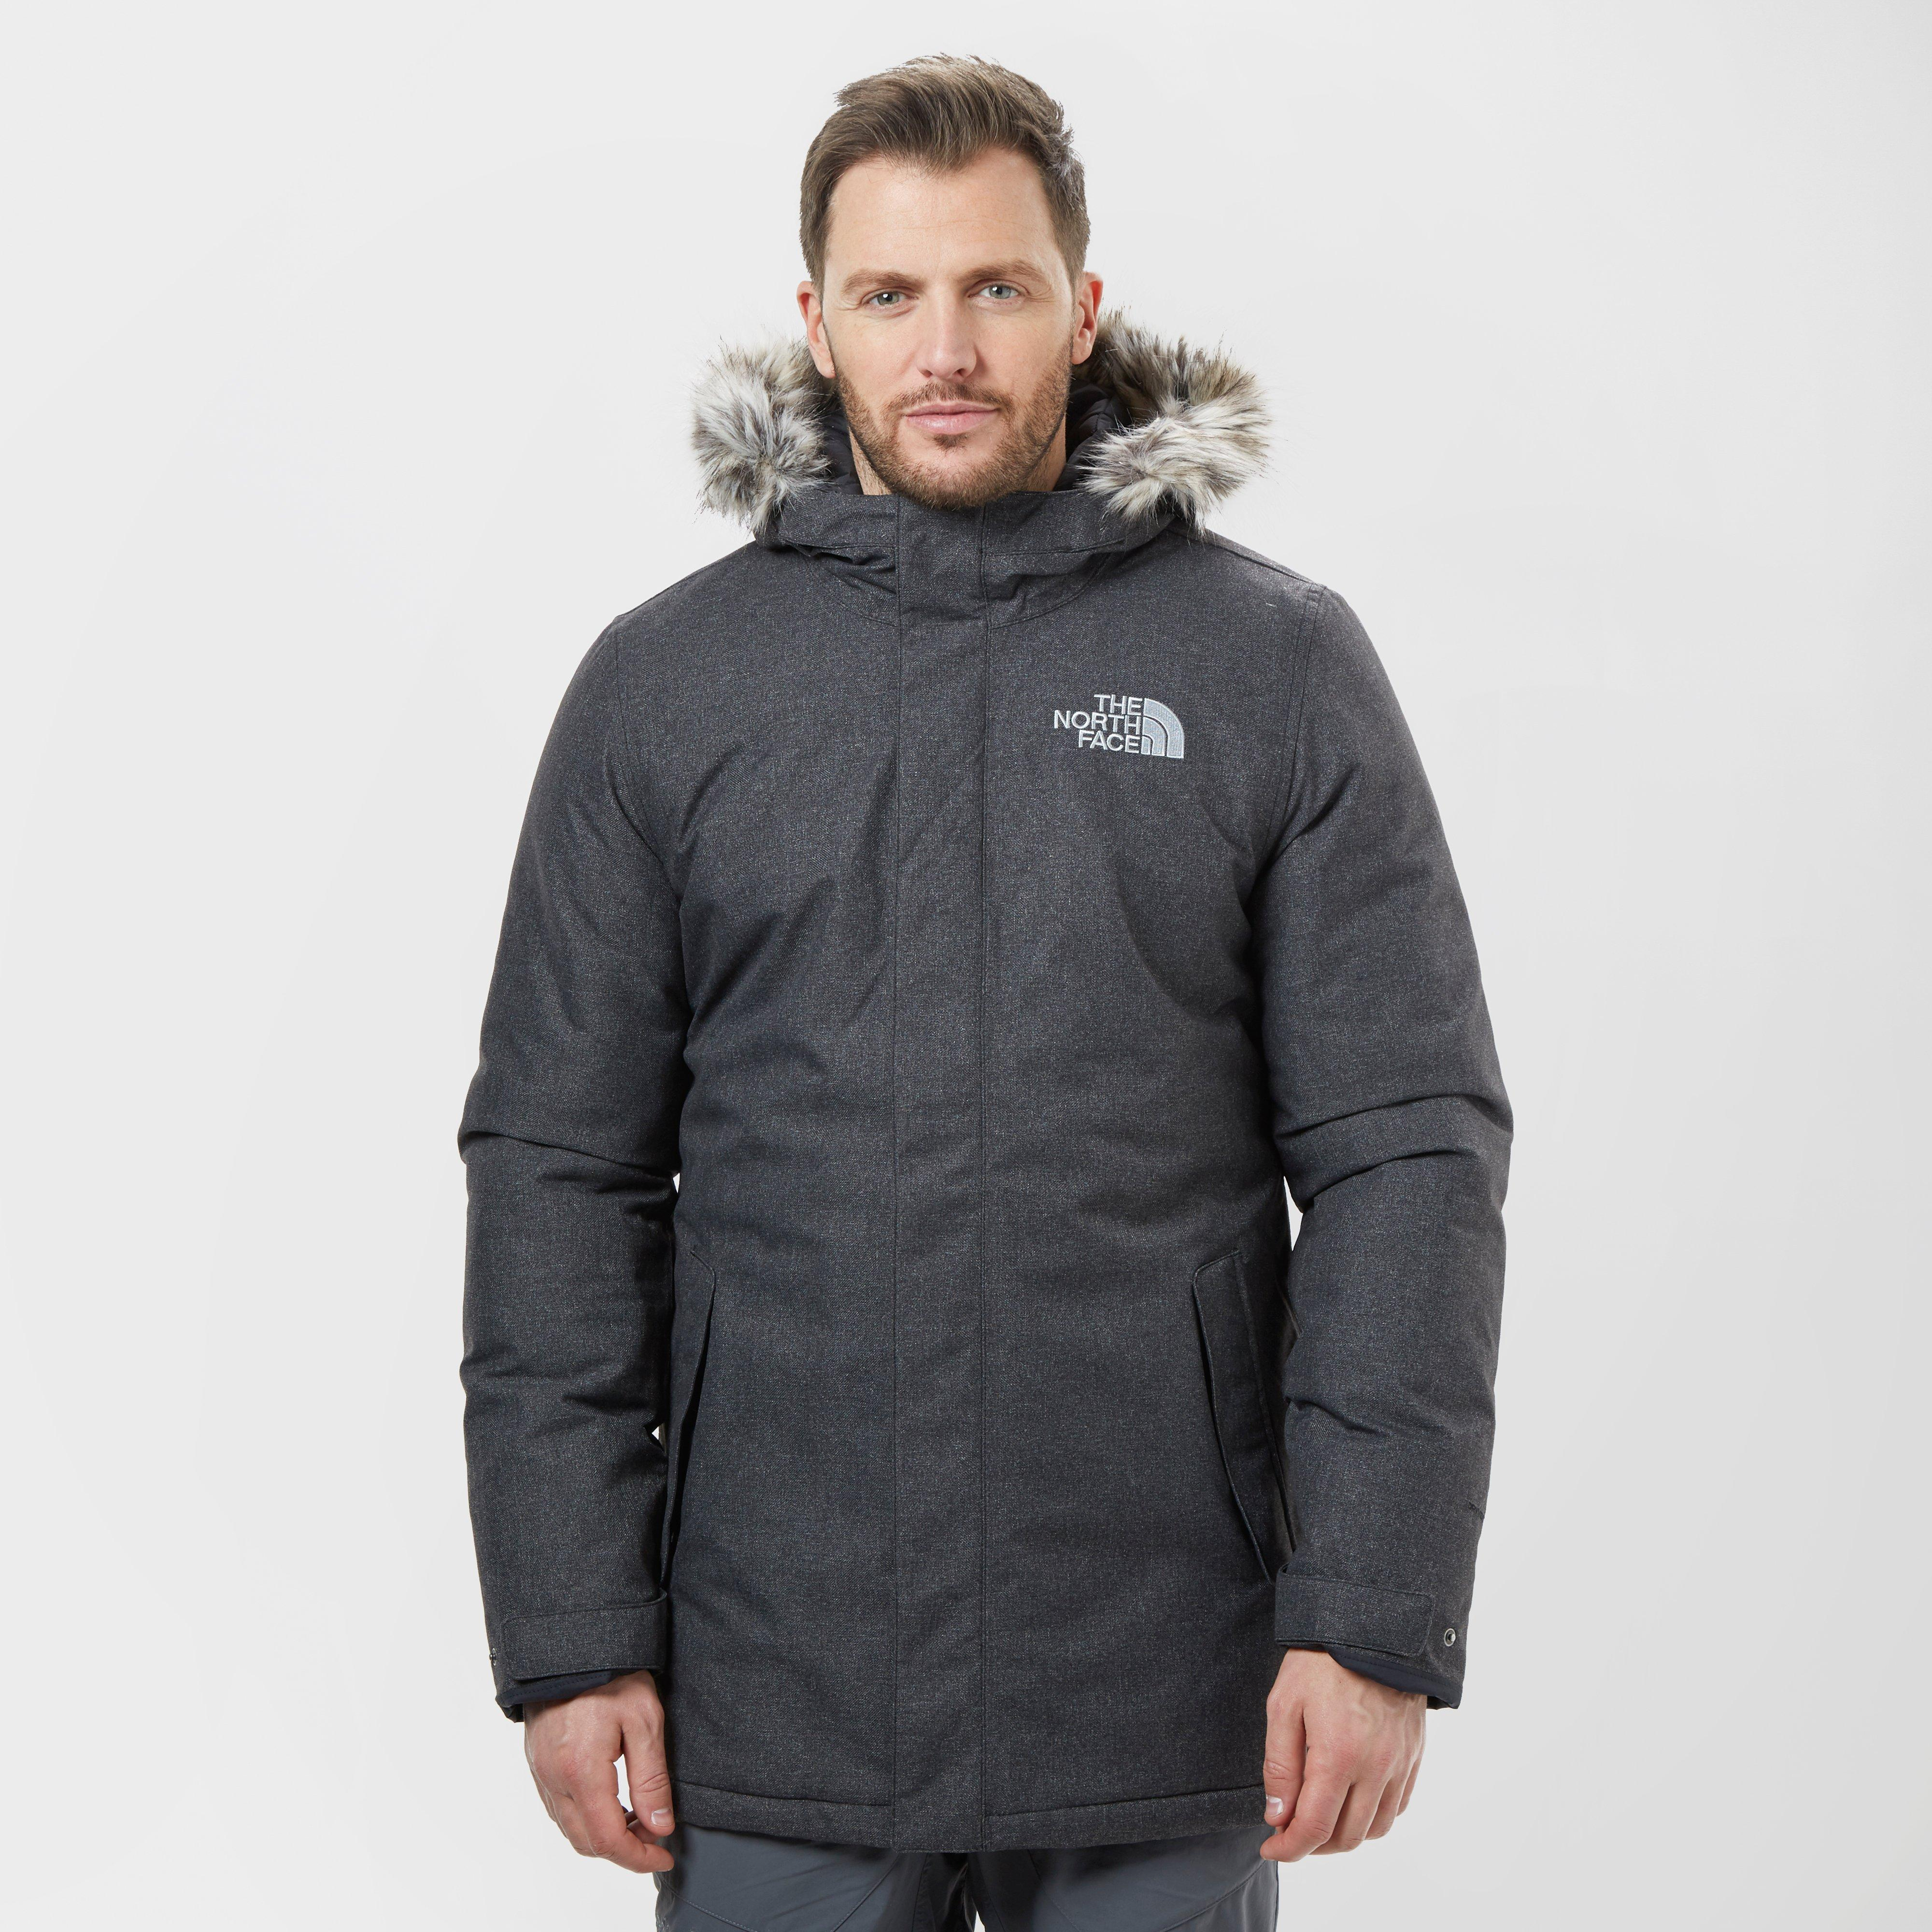 635238cc8 The North Face Zaneck Parka – men's | Compare outdoor jacket prices ...